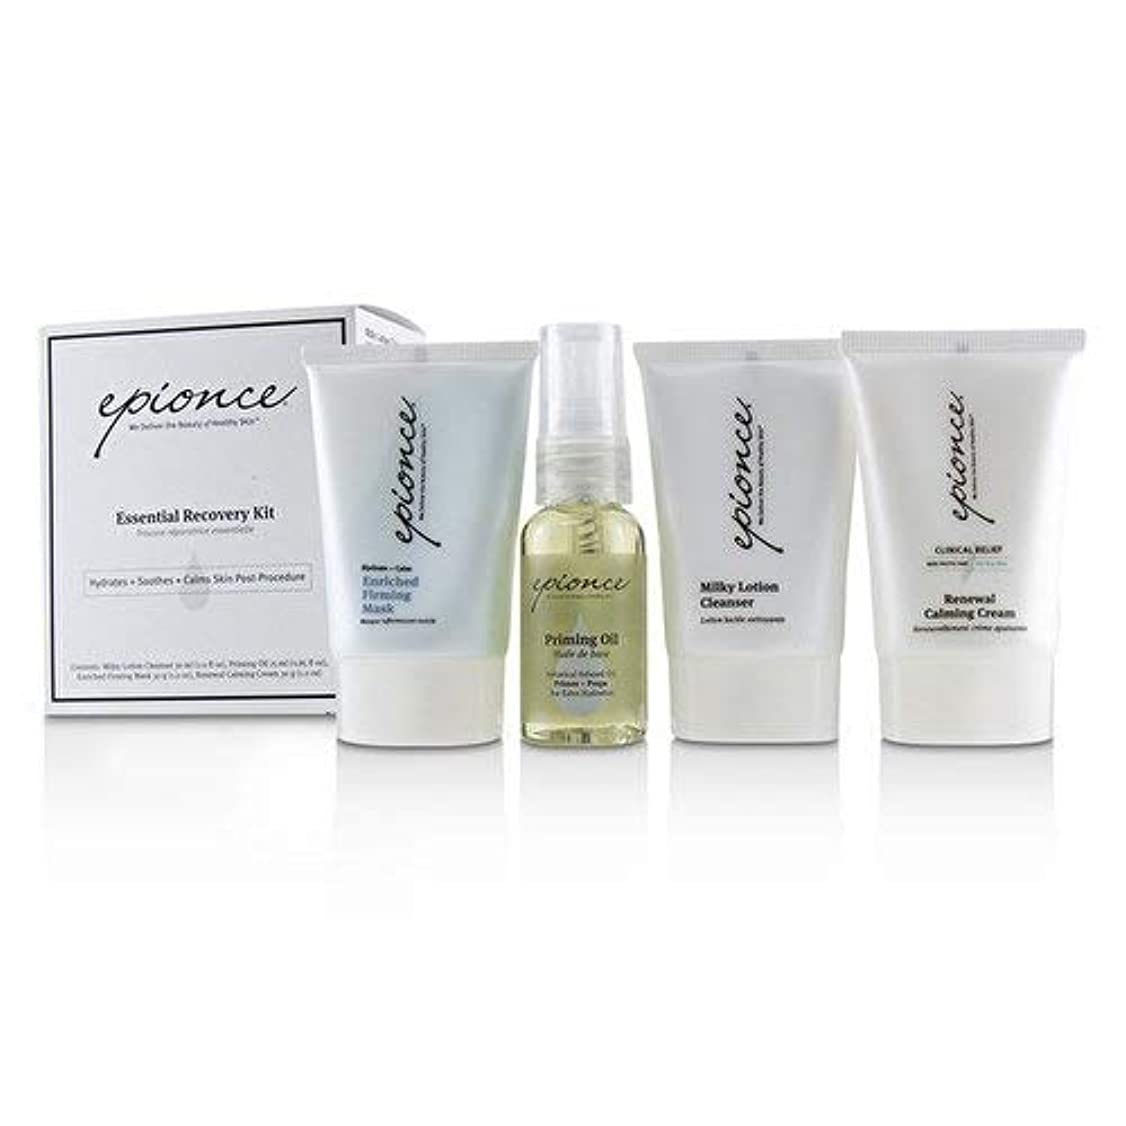 厚いポインタ固有のEpionce Essential Recovery Kit: Milky Lotion Cleanser 30ml+ Priming Oil 25ml+ Enriched Firming Mask 30g+ Renewal...